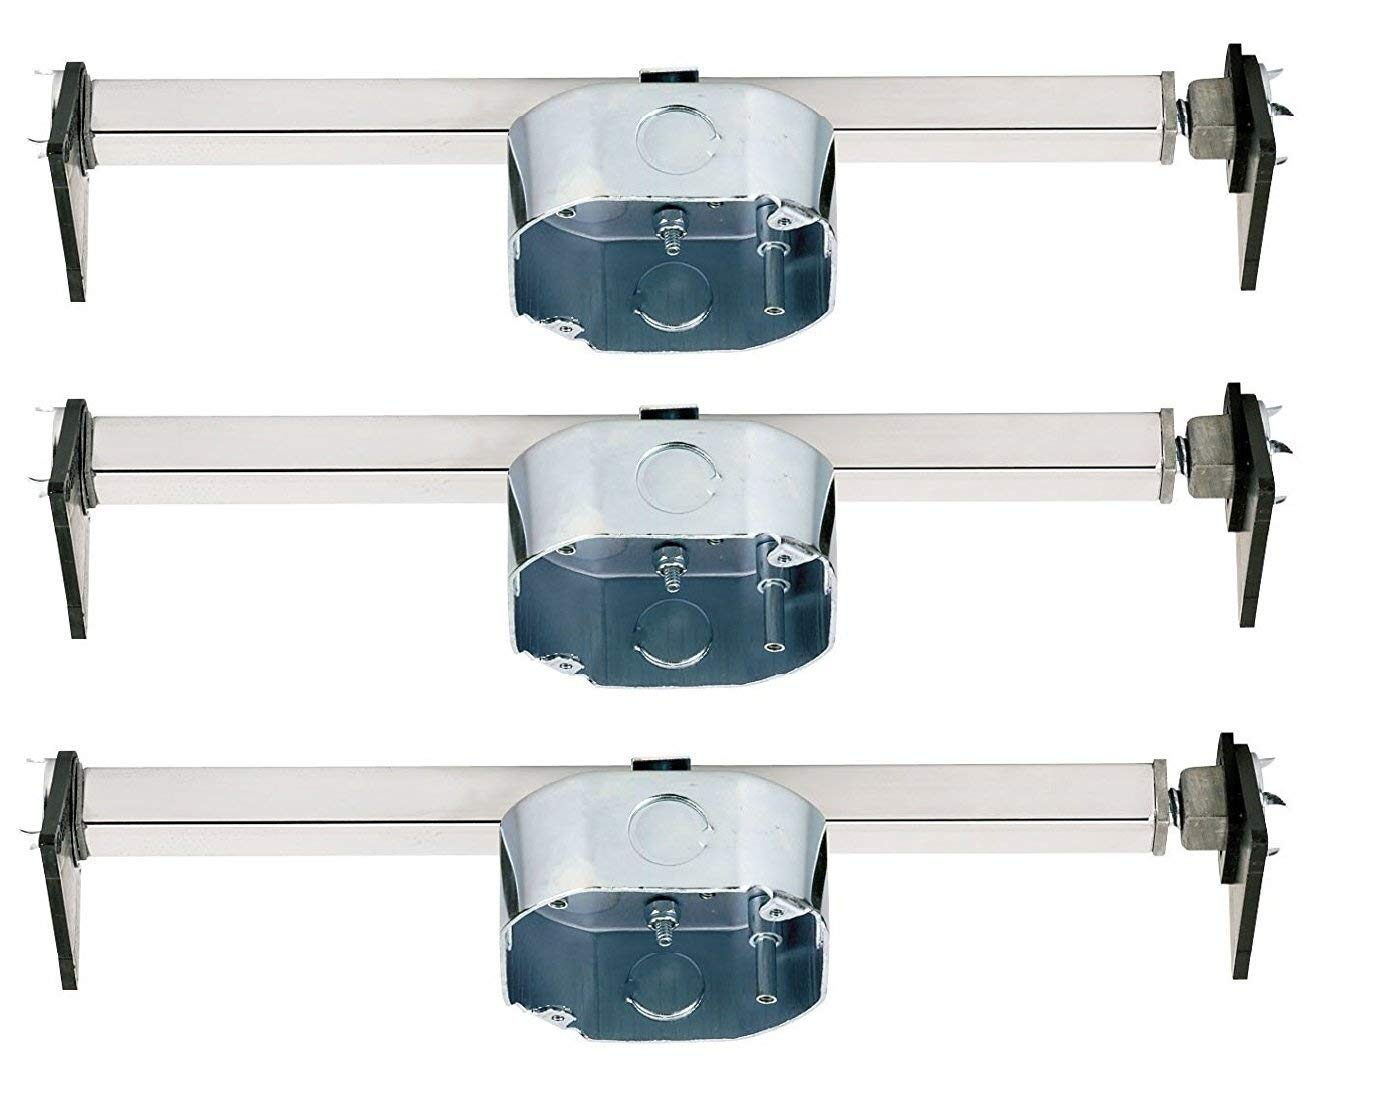 Ciata Lighting Saf-T-Brace for Ceiling Fans, 3 Teeth, Twist and Lock (3 Pack) by Ciata